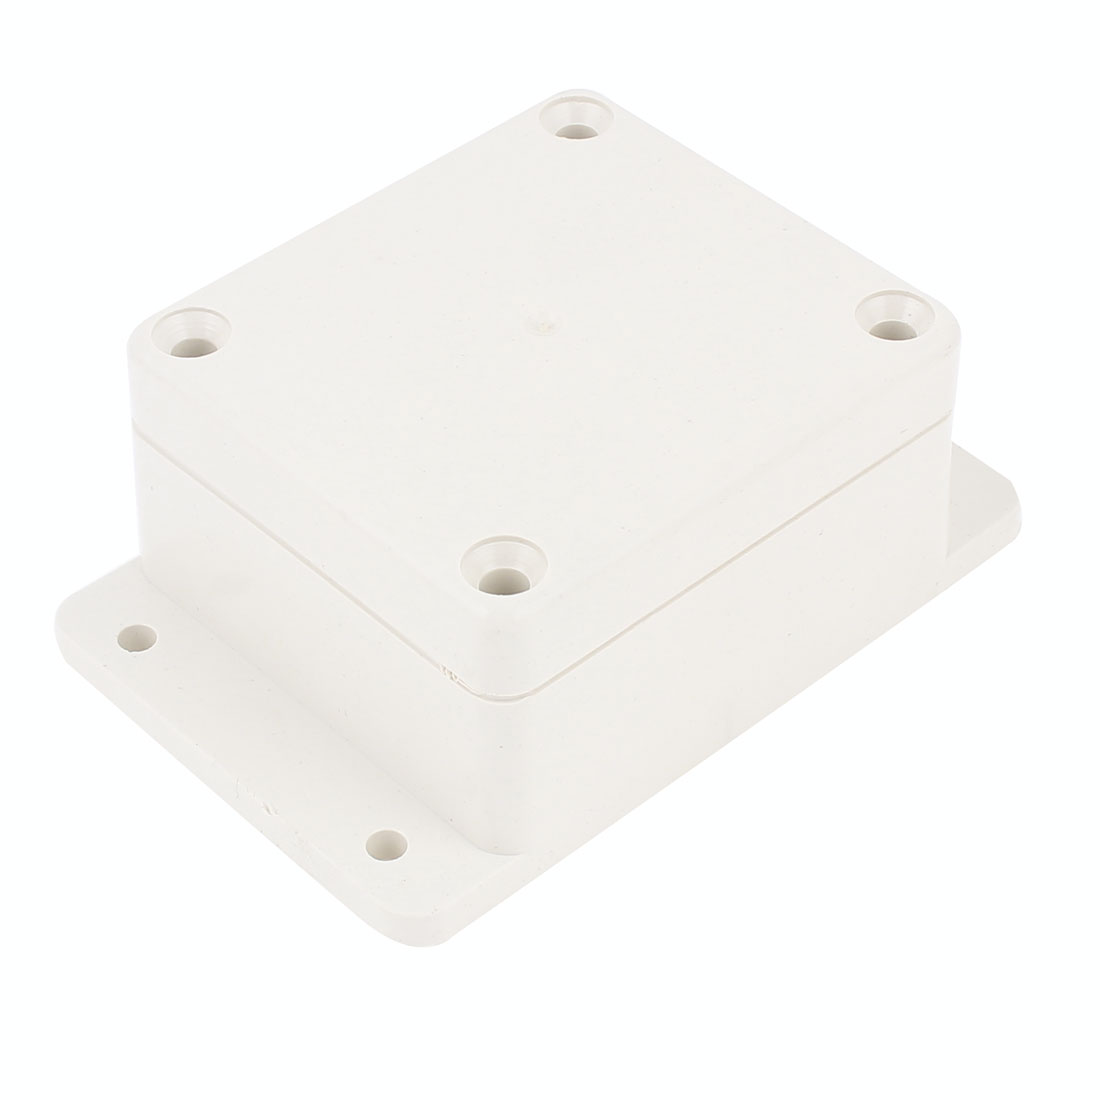 Dustproof IP65 Junction Box Case Terminal Connection Enclosure Adaptable 65mm x 58mm x 35mm